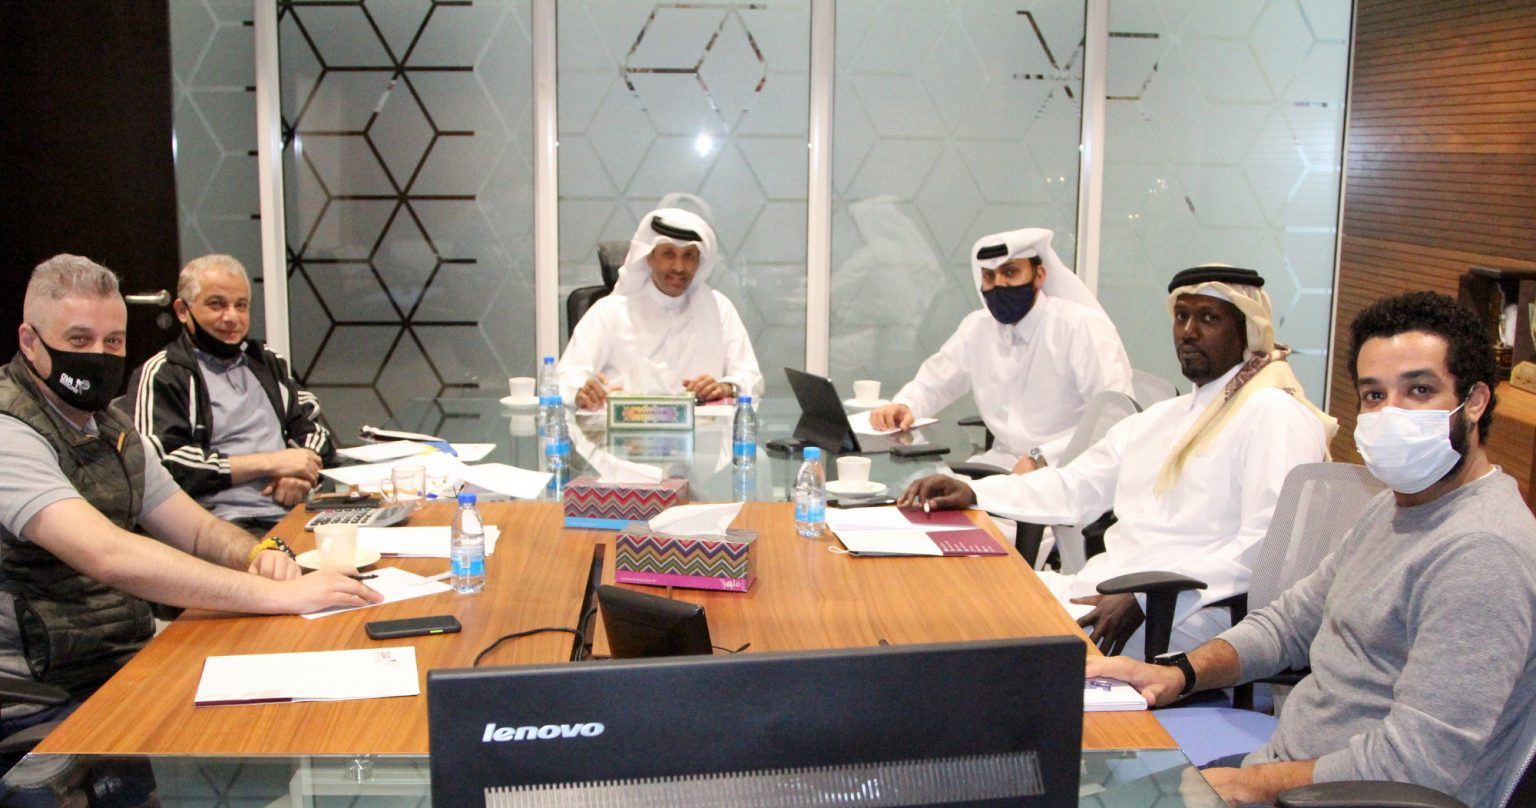 MEETING HELD TO REVIEW FINAL PREPARATION FOR FIVB BEACH VOLLEYBALL WORLD TOUR IN QATAR